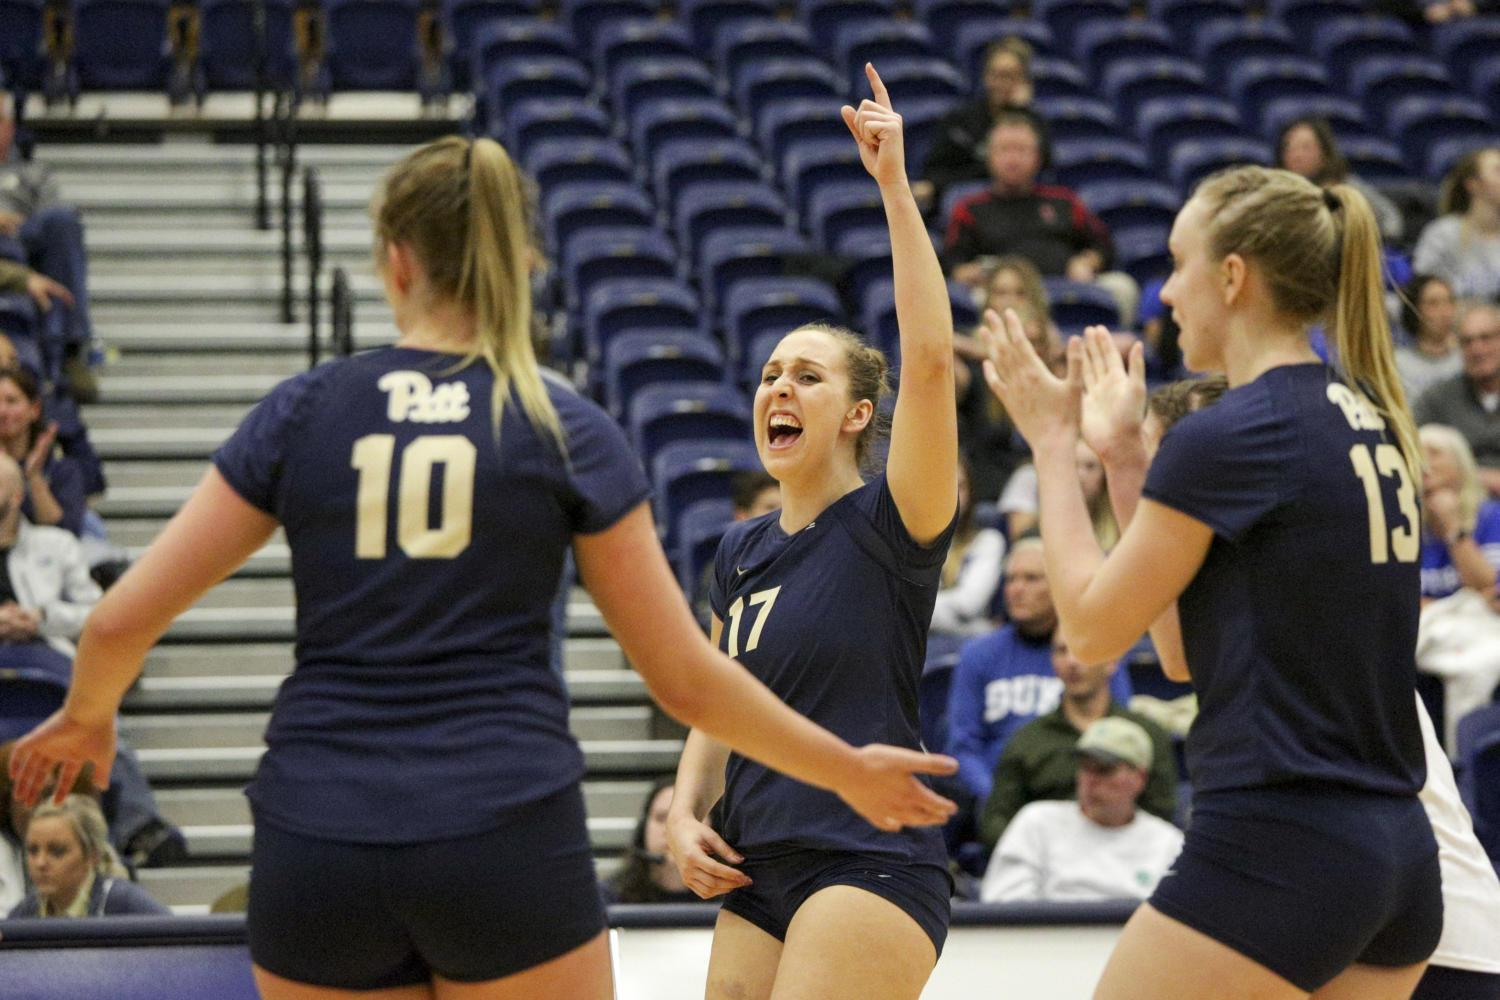 Sophomore Nika Markovic cheers after scoring against Duke in November. The Pitt women's volleyball team finished the regular season tied as ACC champions with Louisville. (Photo by Thomas Yang | Senior Staff Photographer)